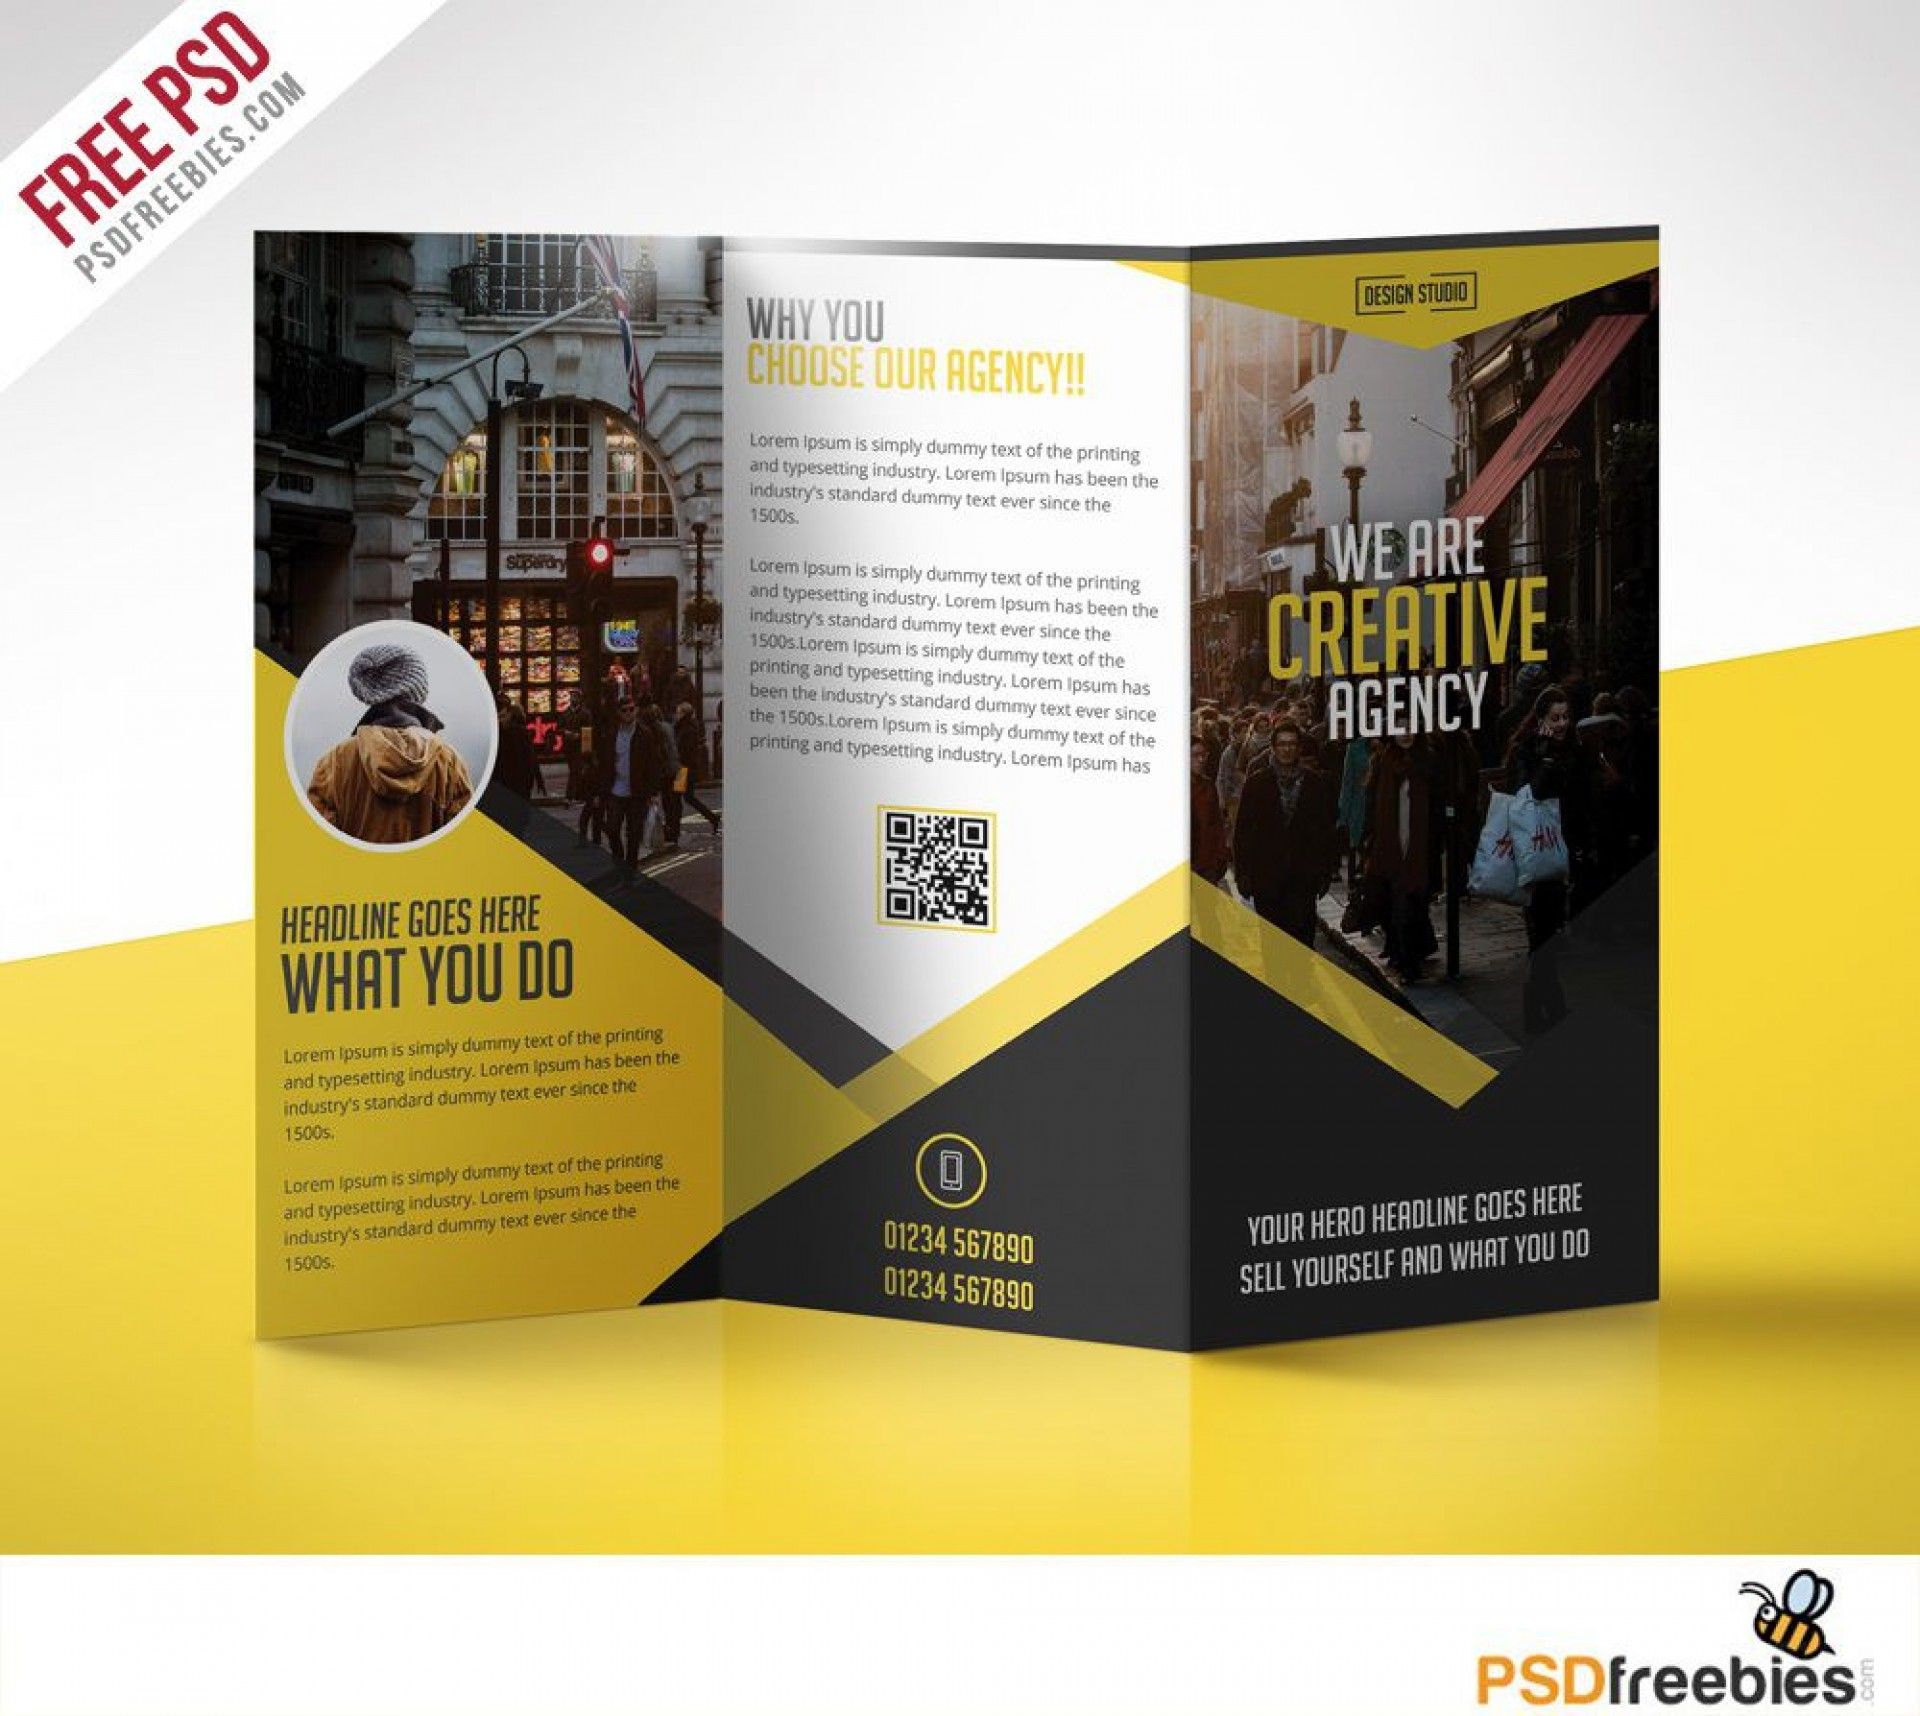 009 Stirring Free Psd Busines Brochure Template Image  Templates Flyer 2018 Corporate1920